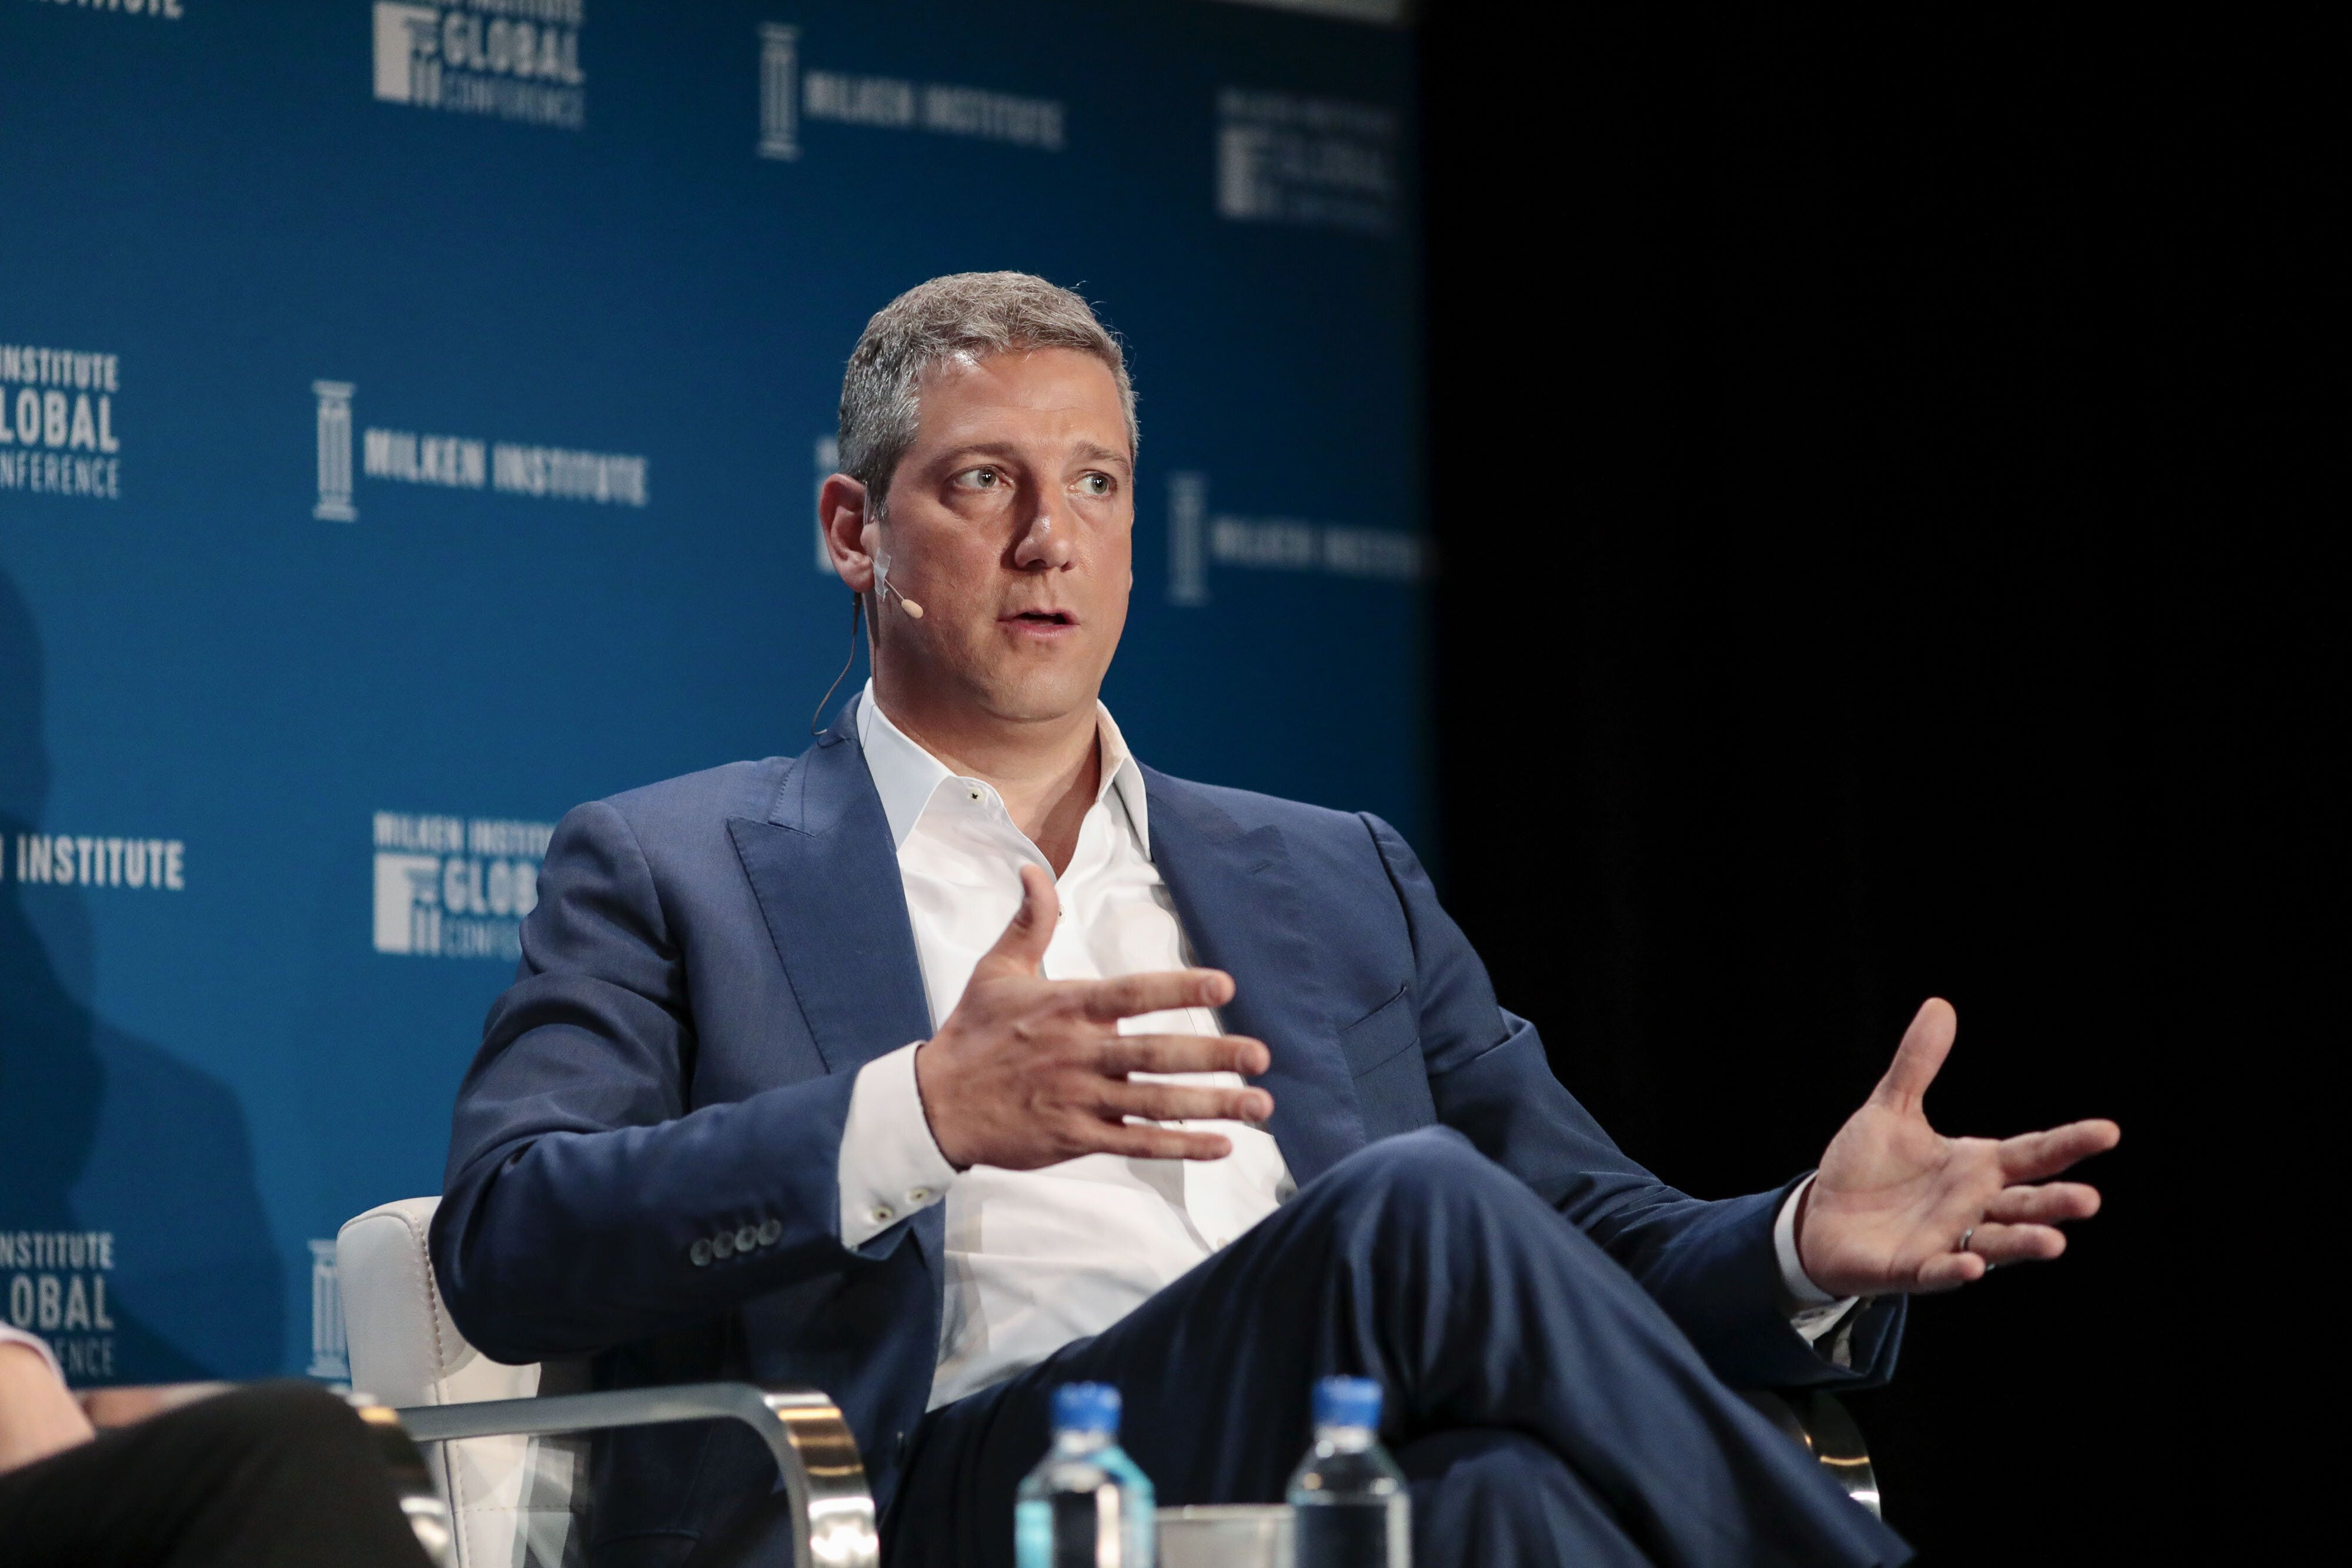 Tim Ryan was the youngest Democrat elected to the U.S. House of Representatives.